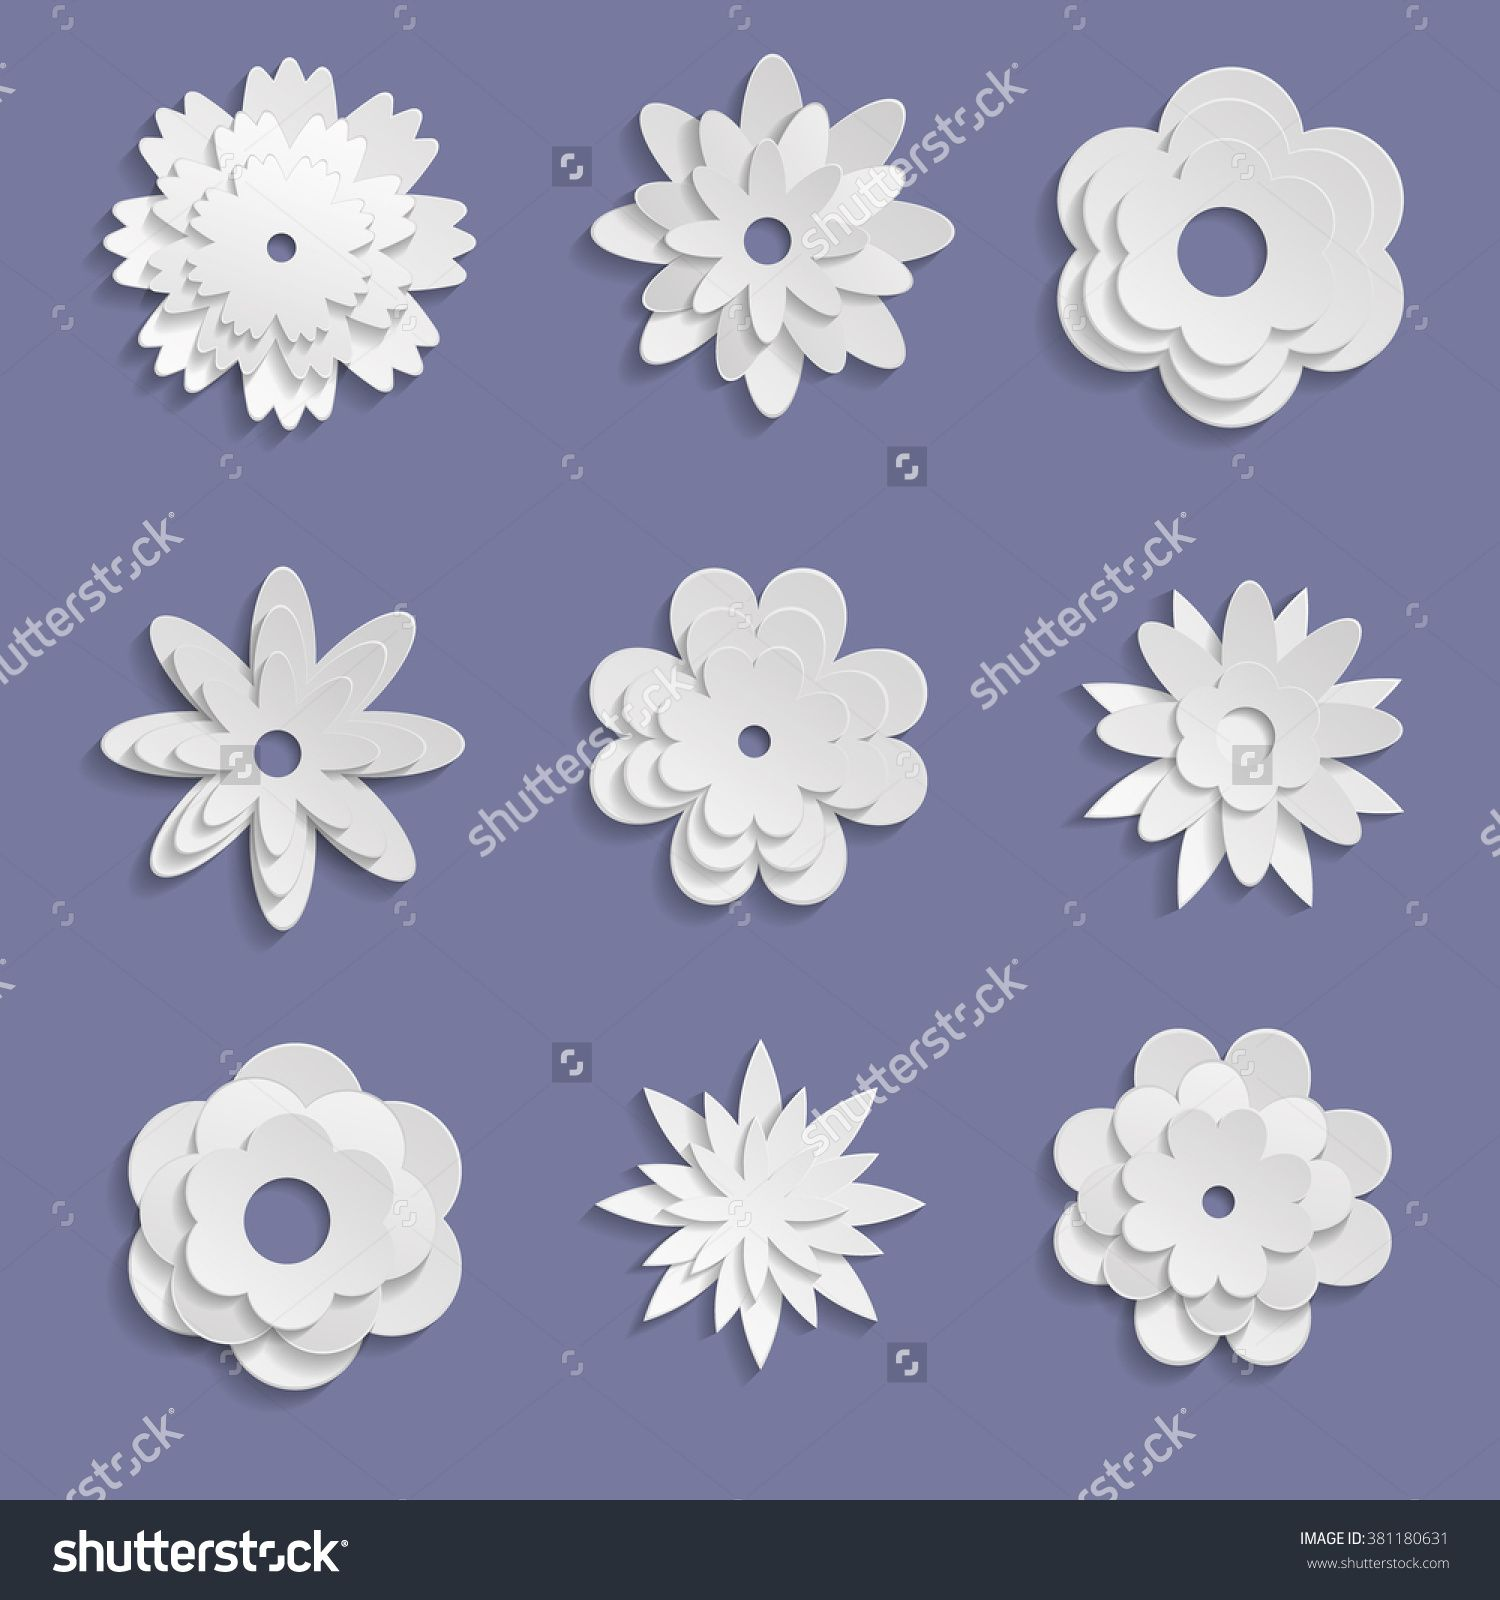 Paper Origami Flowers On Violet Background Inspiration Origami